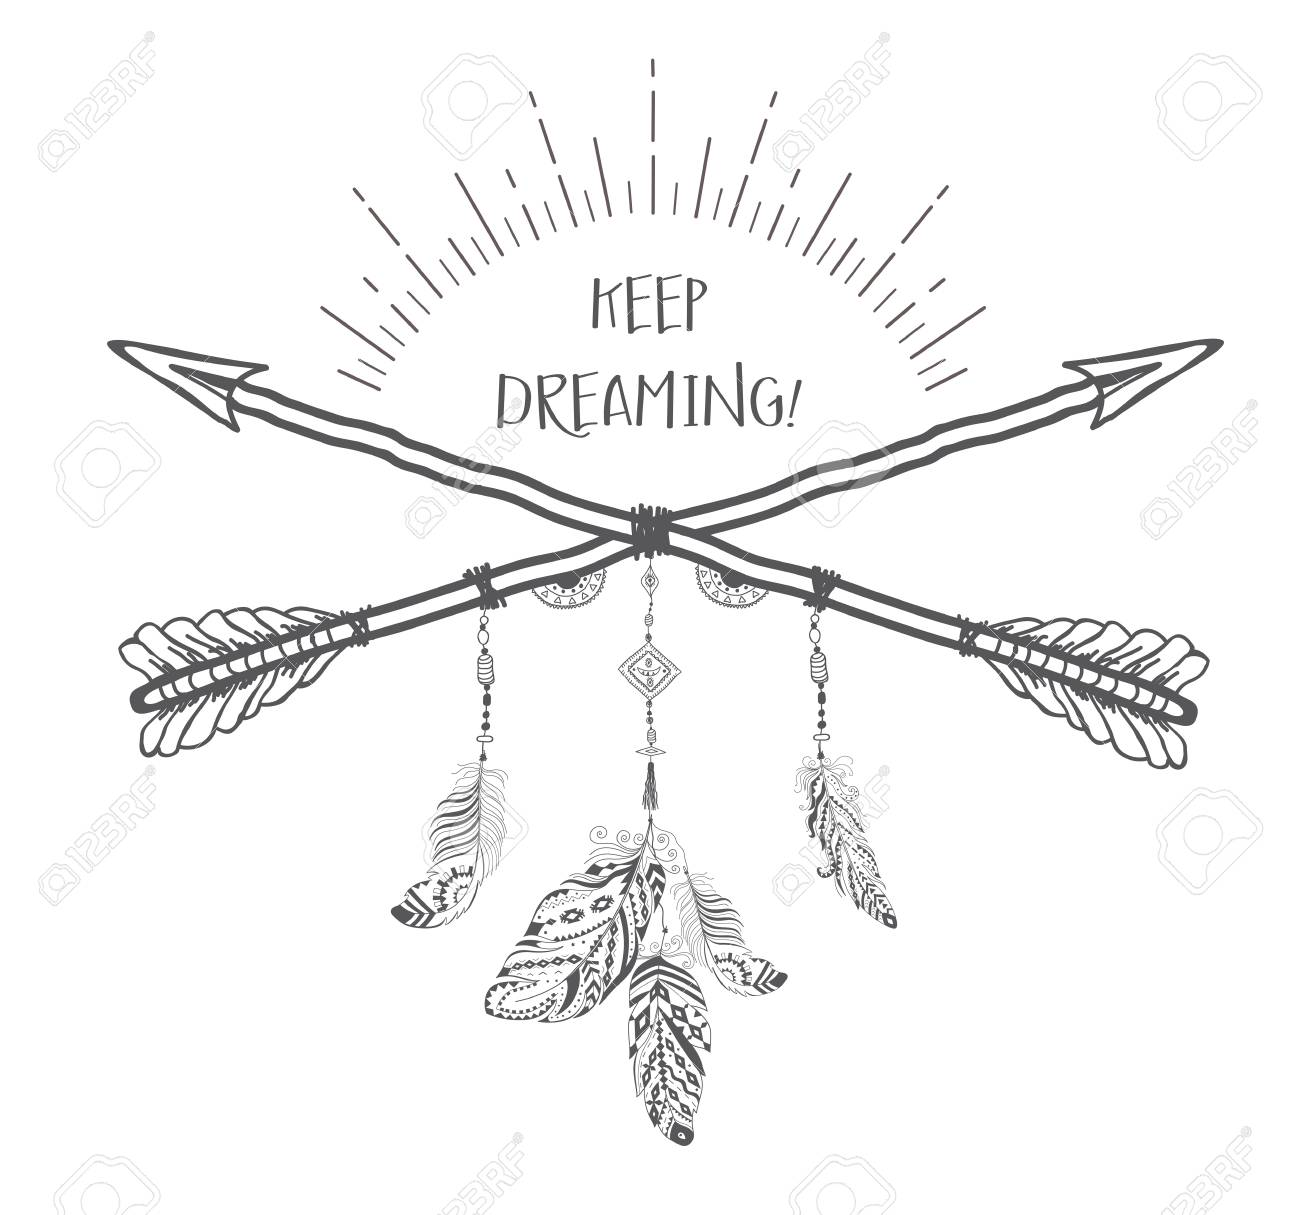 boho style with ethnic arrows and feathers american indian motifs